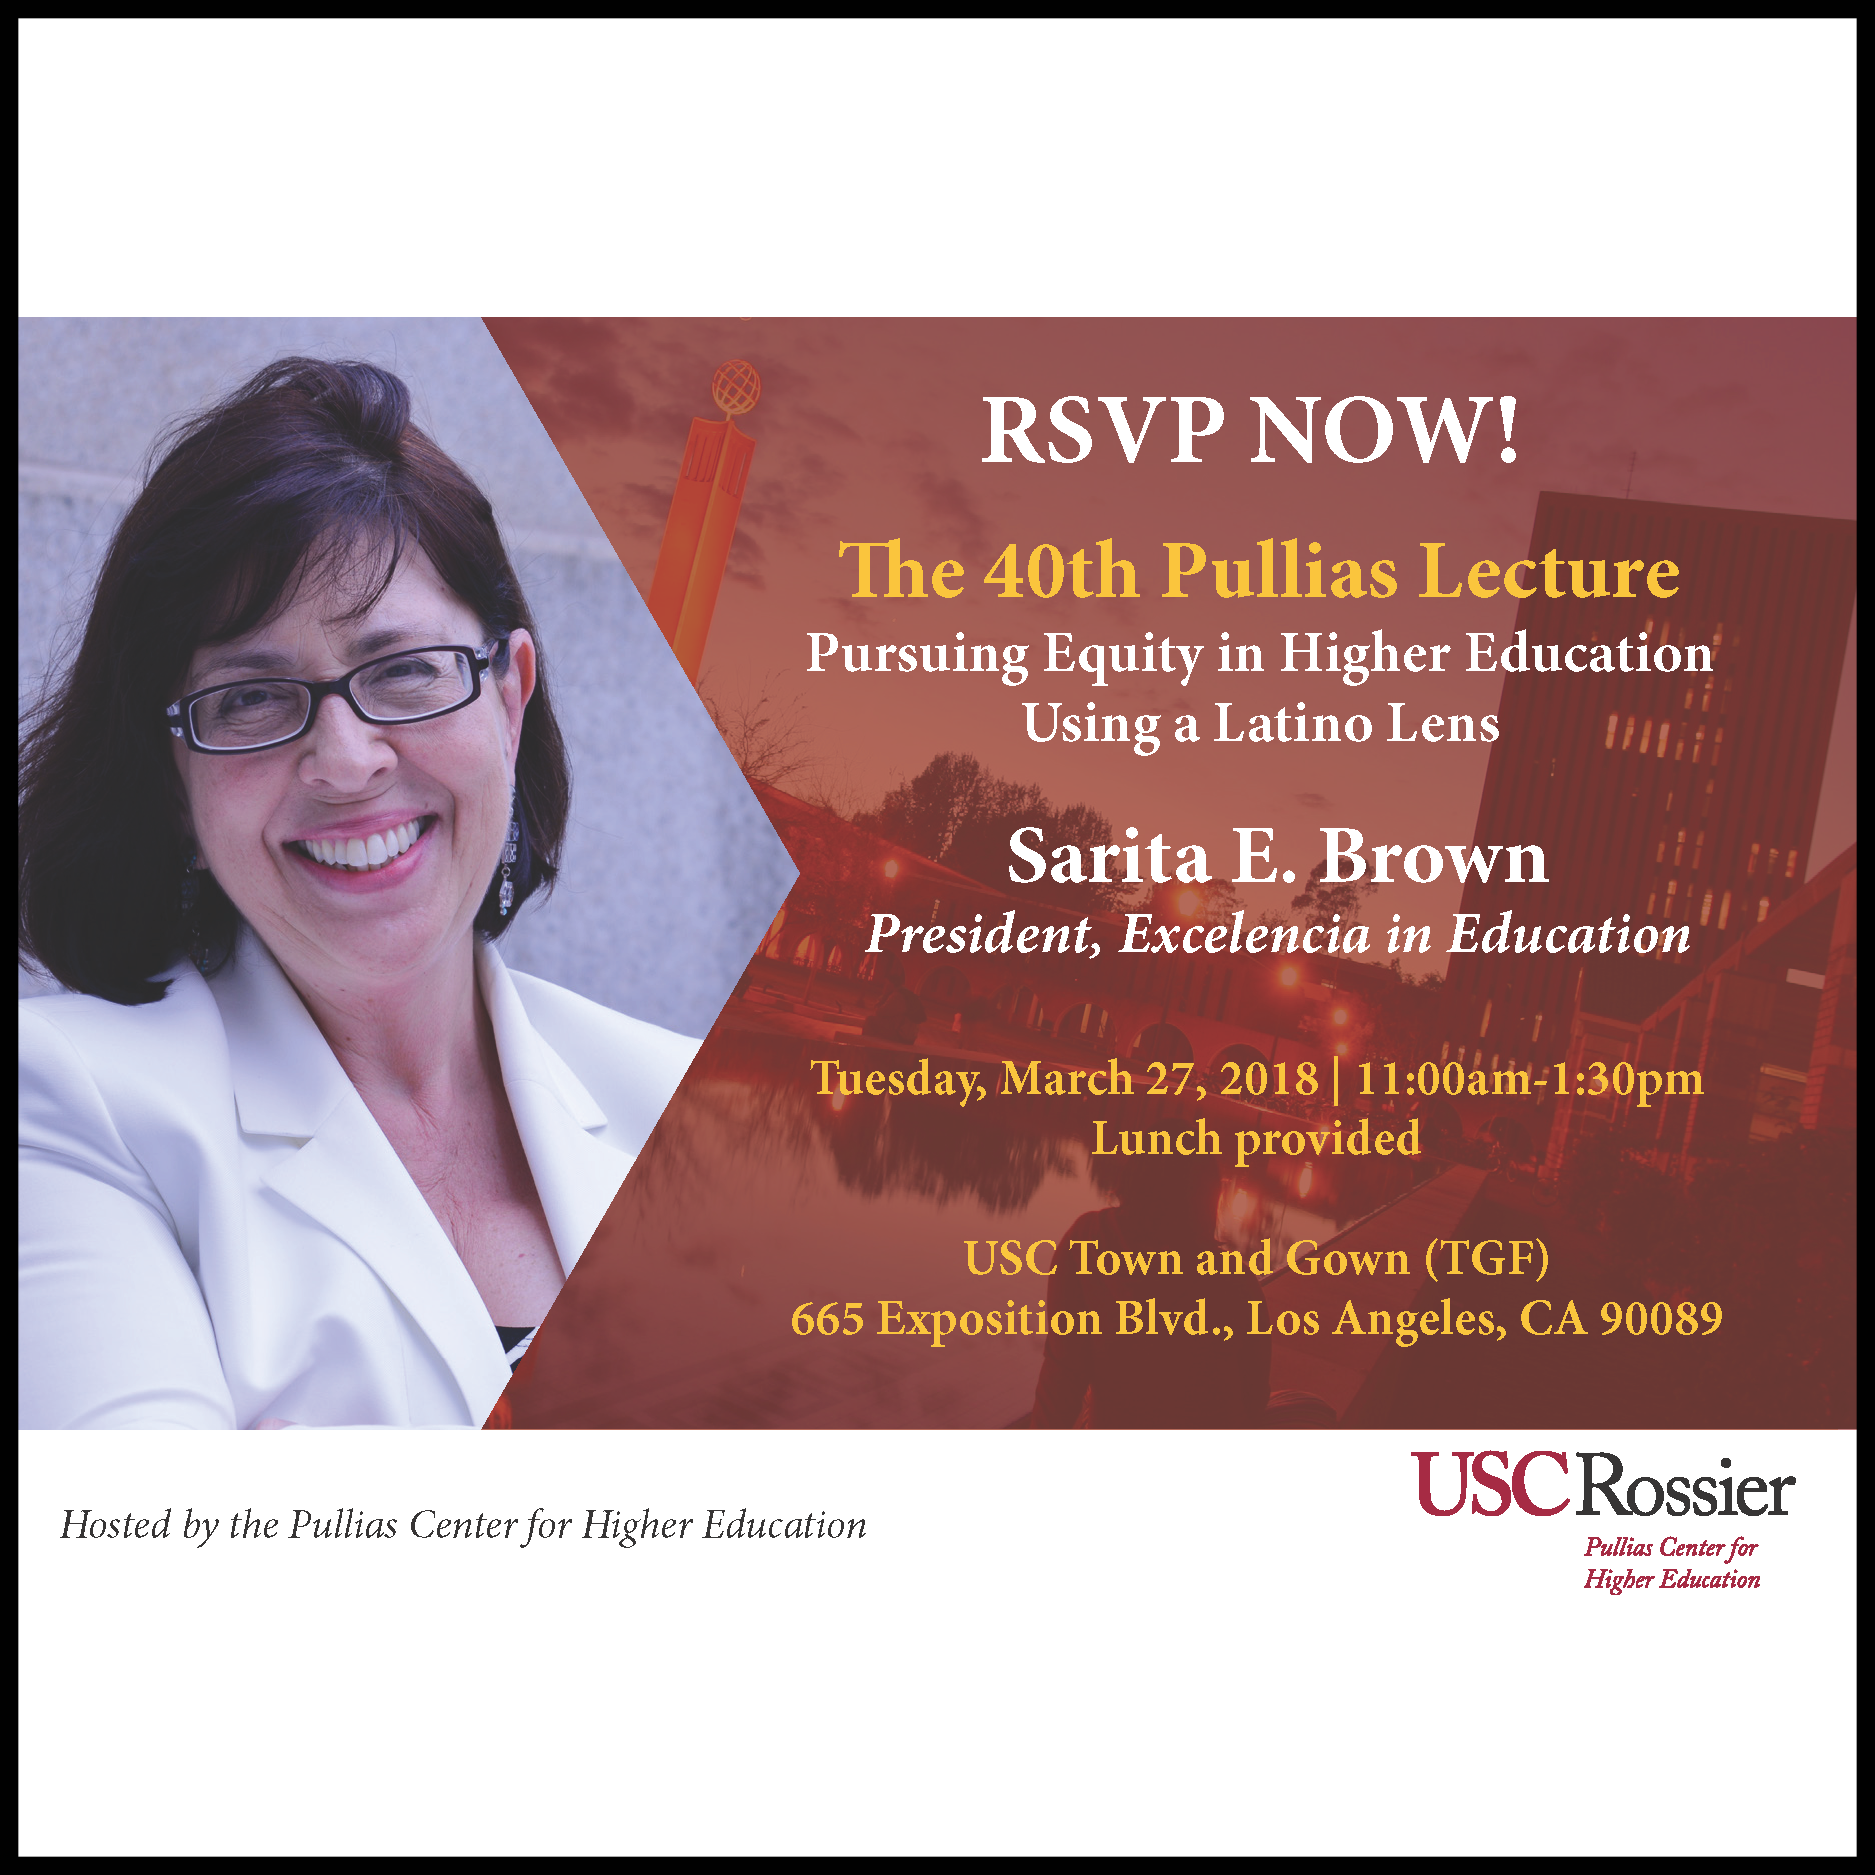 The 40th Pullias Lecture: Pursuing Equity in Higher Education Using a Latino Lens — March 27, 2018